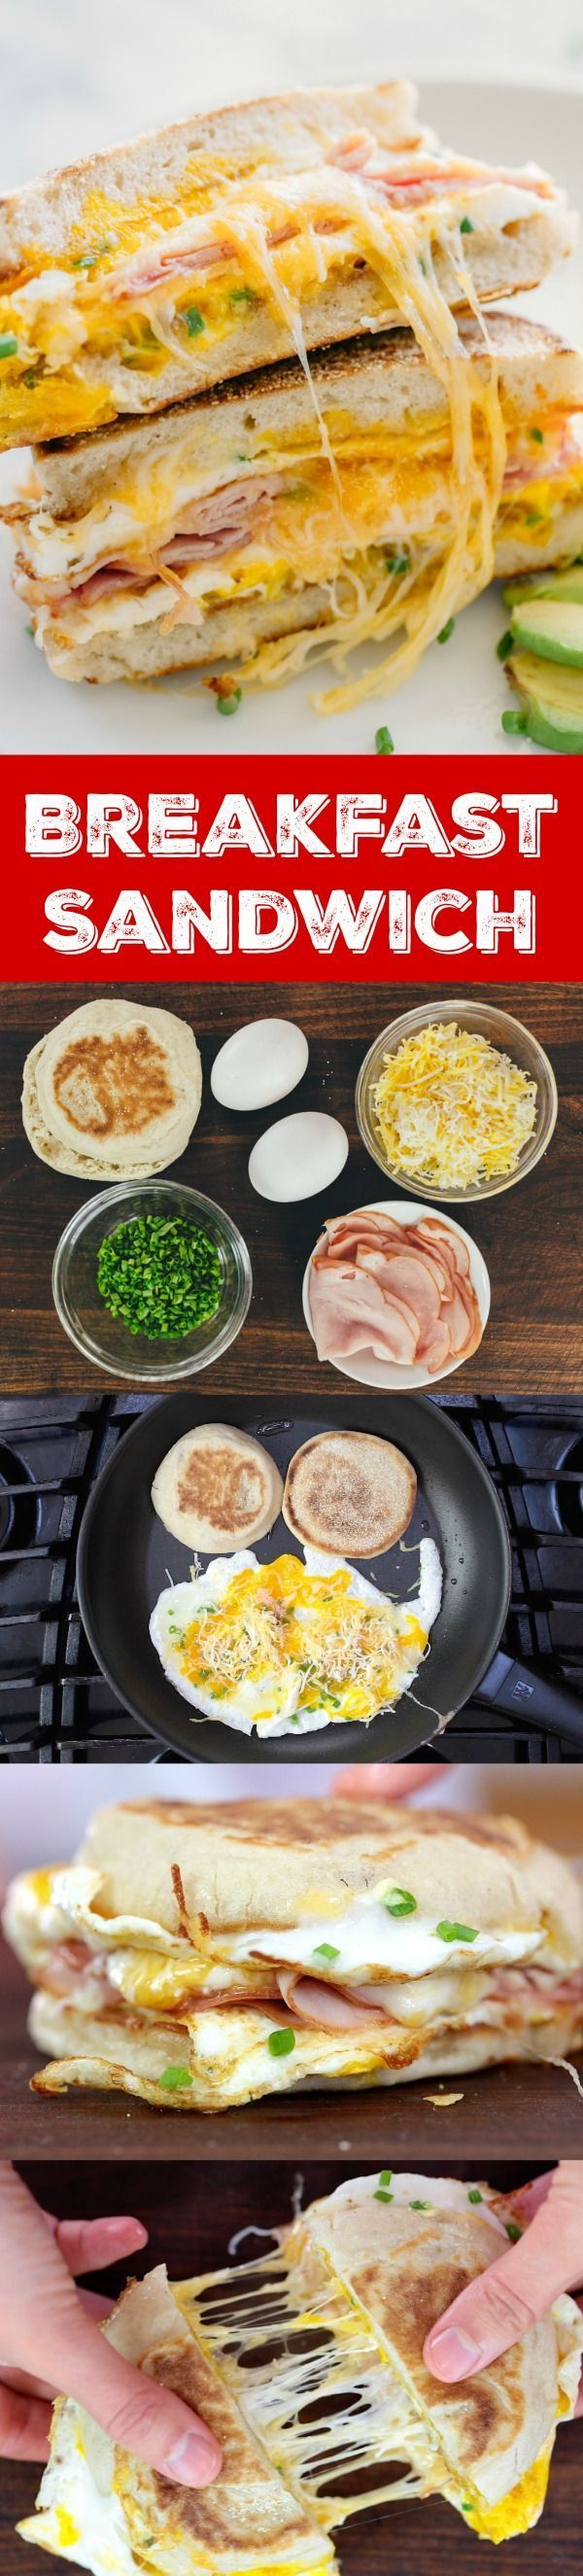 This breakfast sandwich is cheesy, juicy, easy and so delicious! All you need is 5 minutes and 5 ingredients. A one-pan breakfast sandwich recipe with video   http://natashaskitchen.com